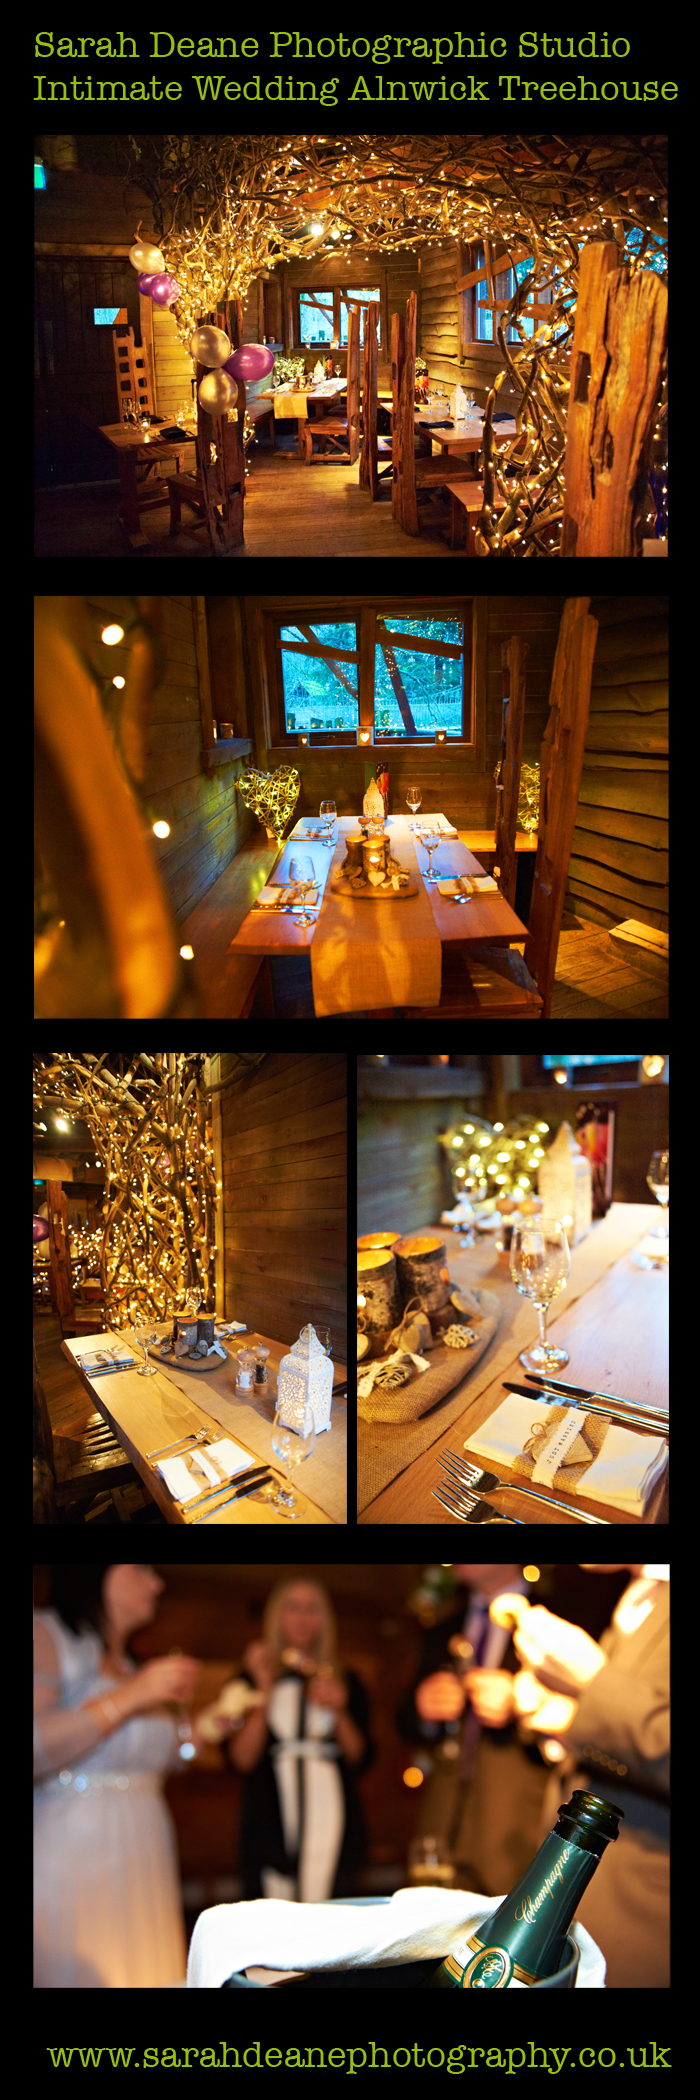 ALNWICK TREEHOUSE DINING